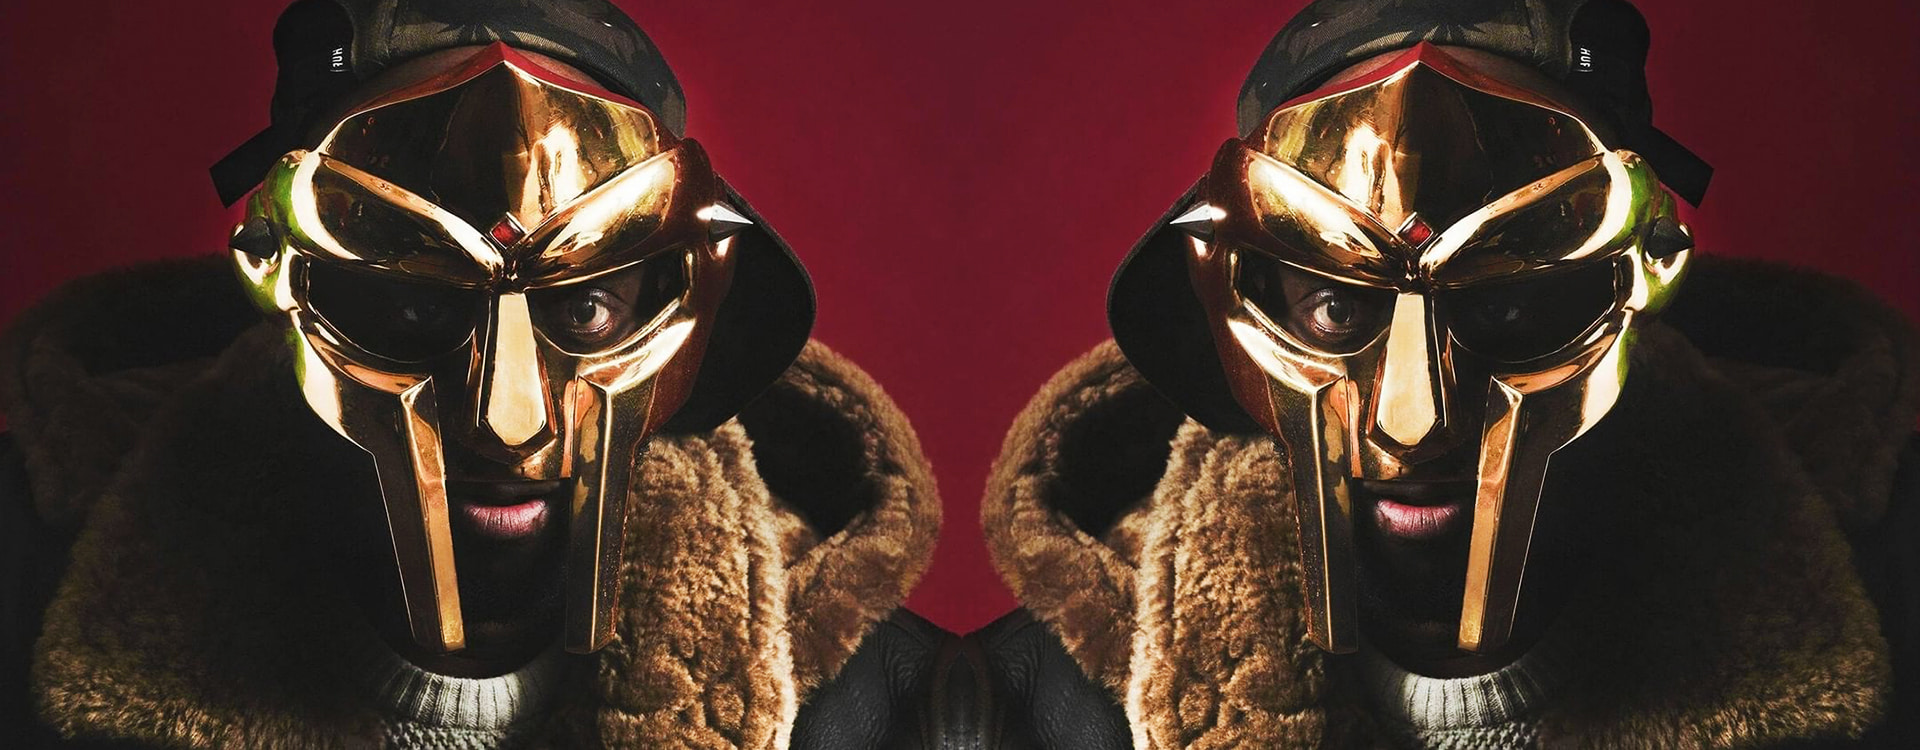 The world knew everything and nothing about Daniel Dumile (MF DOOM) — which is the legacy his crypto art was meant to leave behind.